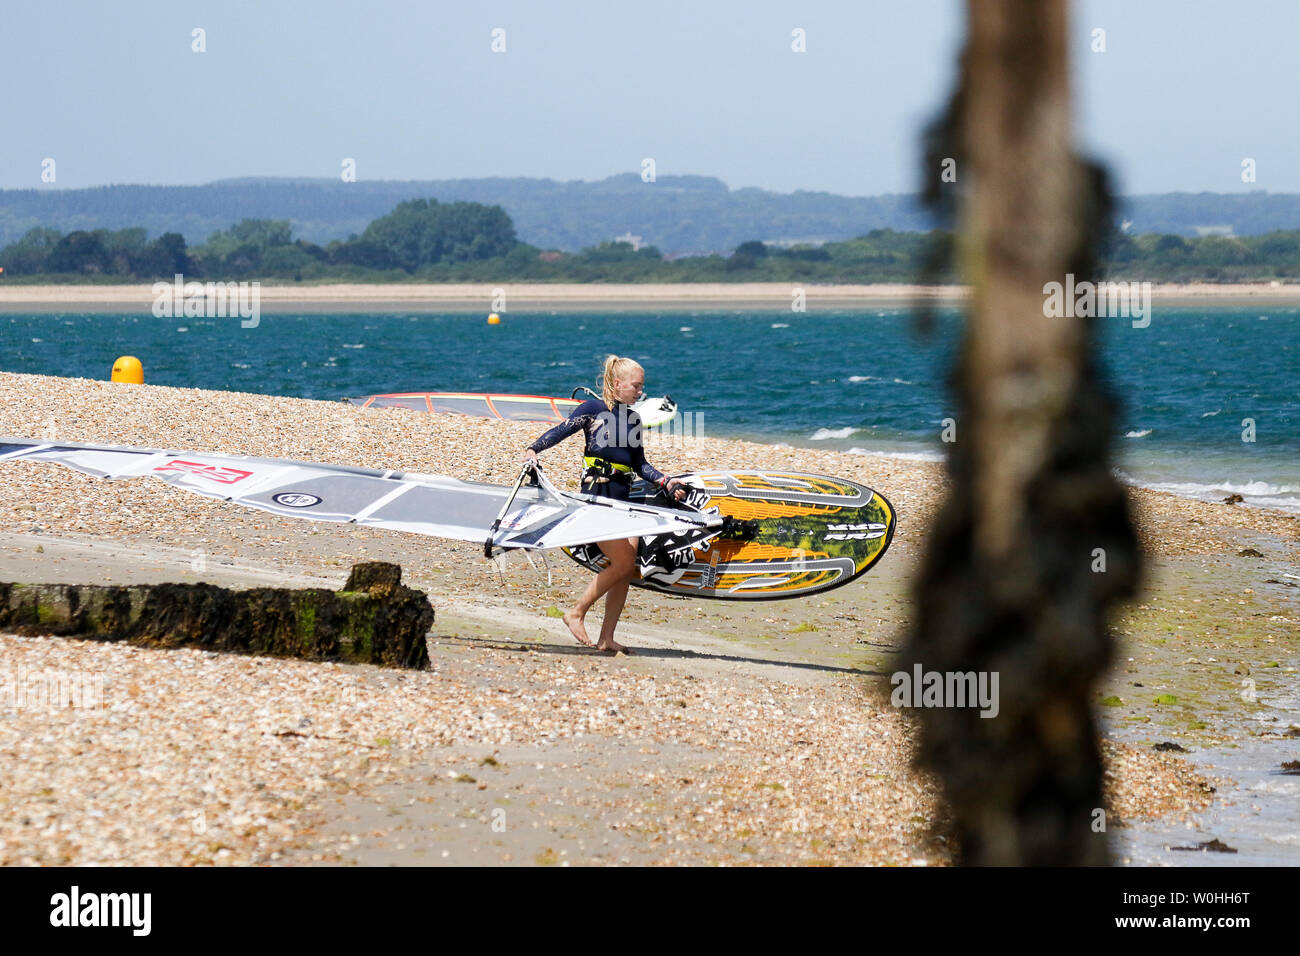 Bracklesham Road, Hayling Island. 27th June 2019. Beautiful sunny and windy weather along the south coast today. Windsurfers enjoying the conditions off Hayling Island Sailing Club in Hampshire. Credit: james jagger/Alamy Live News - Stock Image